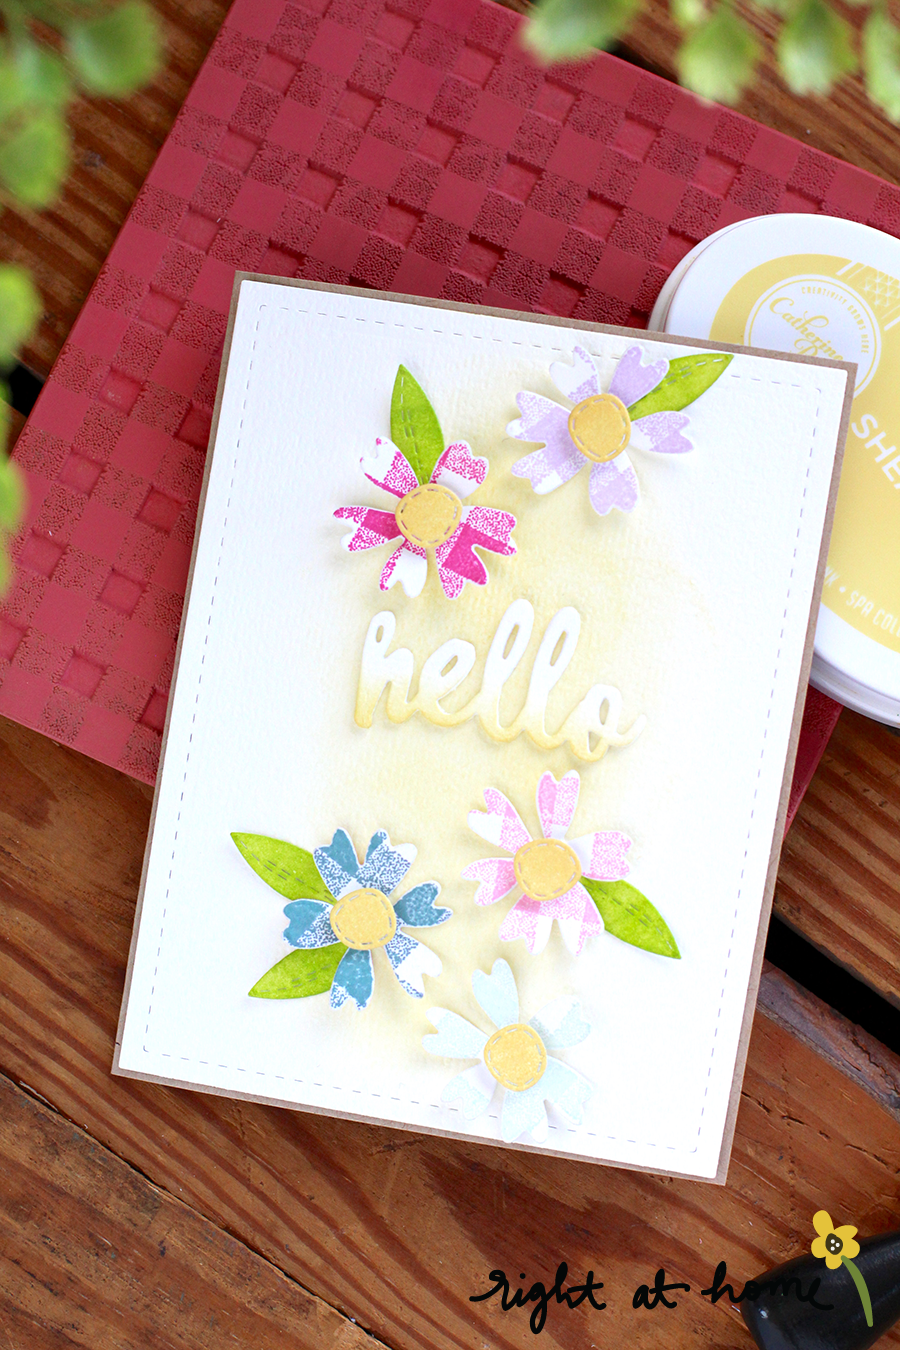 Gingham Background Stamped Flowers Hello Card // National Craft Month with Right at Home + Dear Paperlicious - rightathomeshop.com/blog